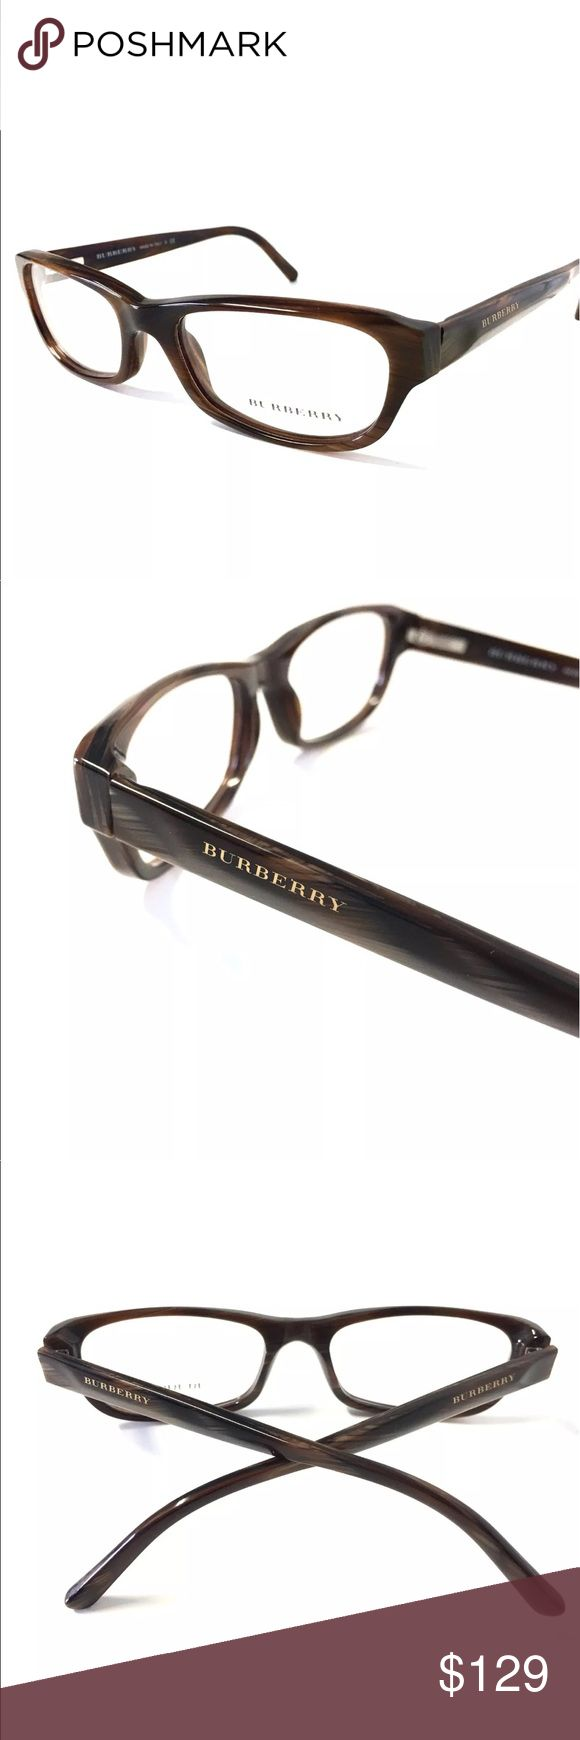 BURBERRY Brown Horn Eyeglasses Brown Horn Burberry Eyeglasses  Burberry Eyeglasses for Prescription lenses  SIZE: 51mm - 17mm - 135mm  🦋100% Authentic!!!  🦋Includes a Burberry Case. No Tags Burberry Accessories Glasses